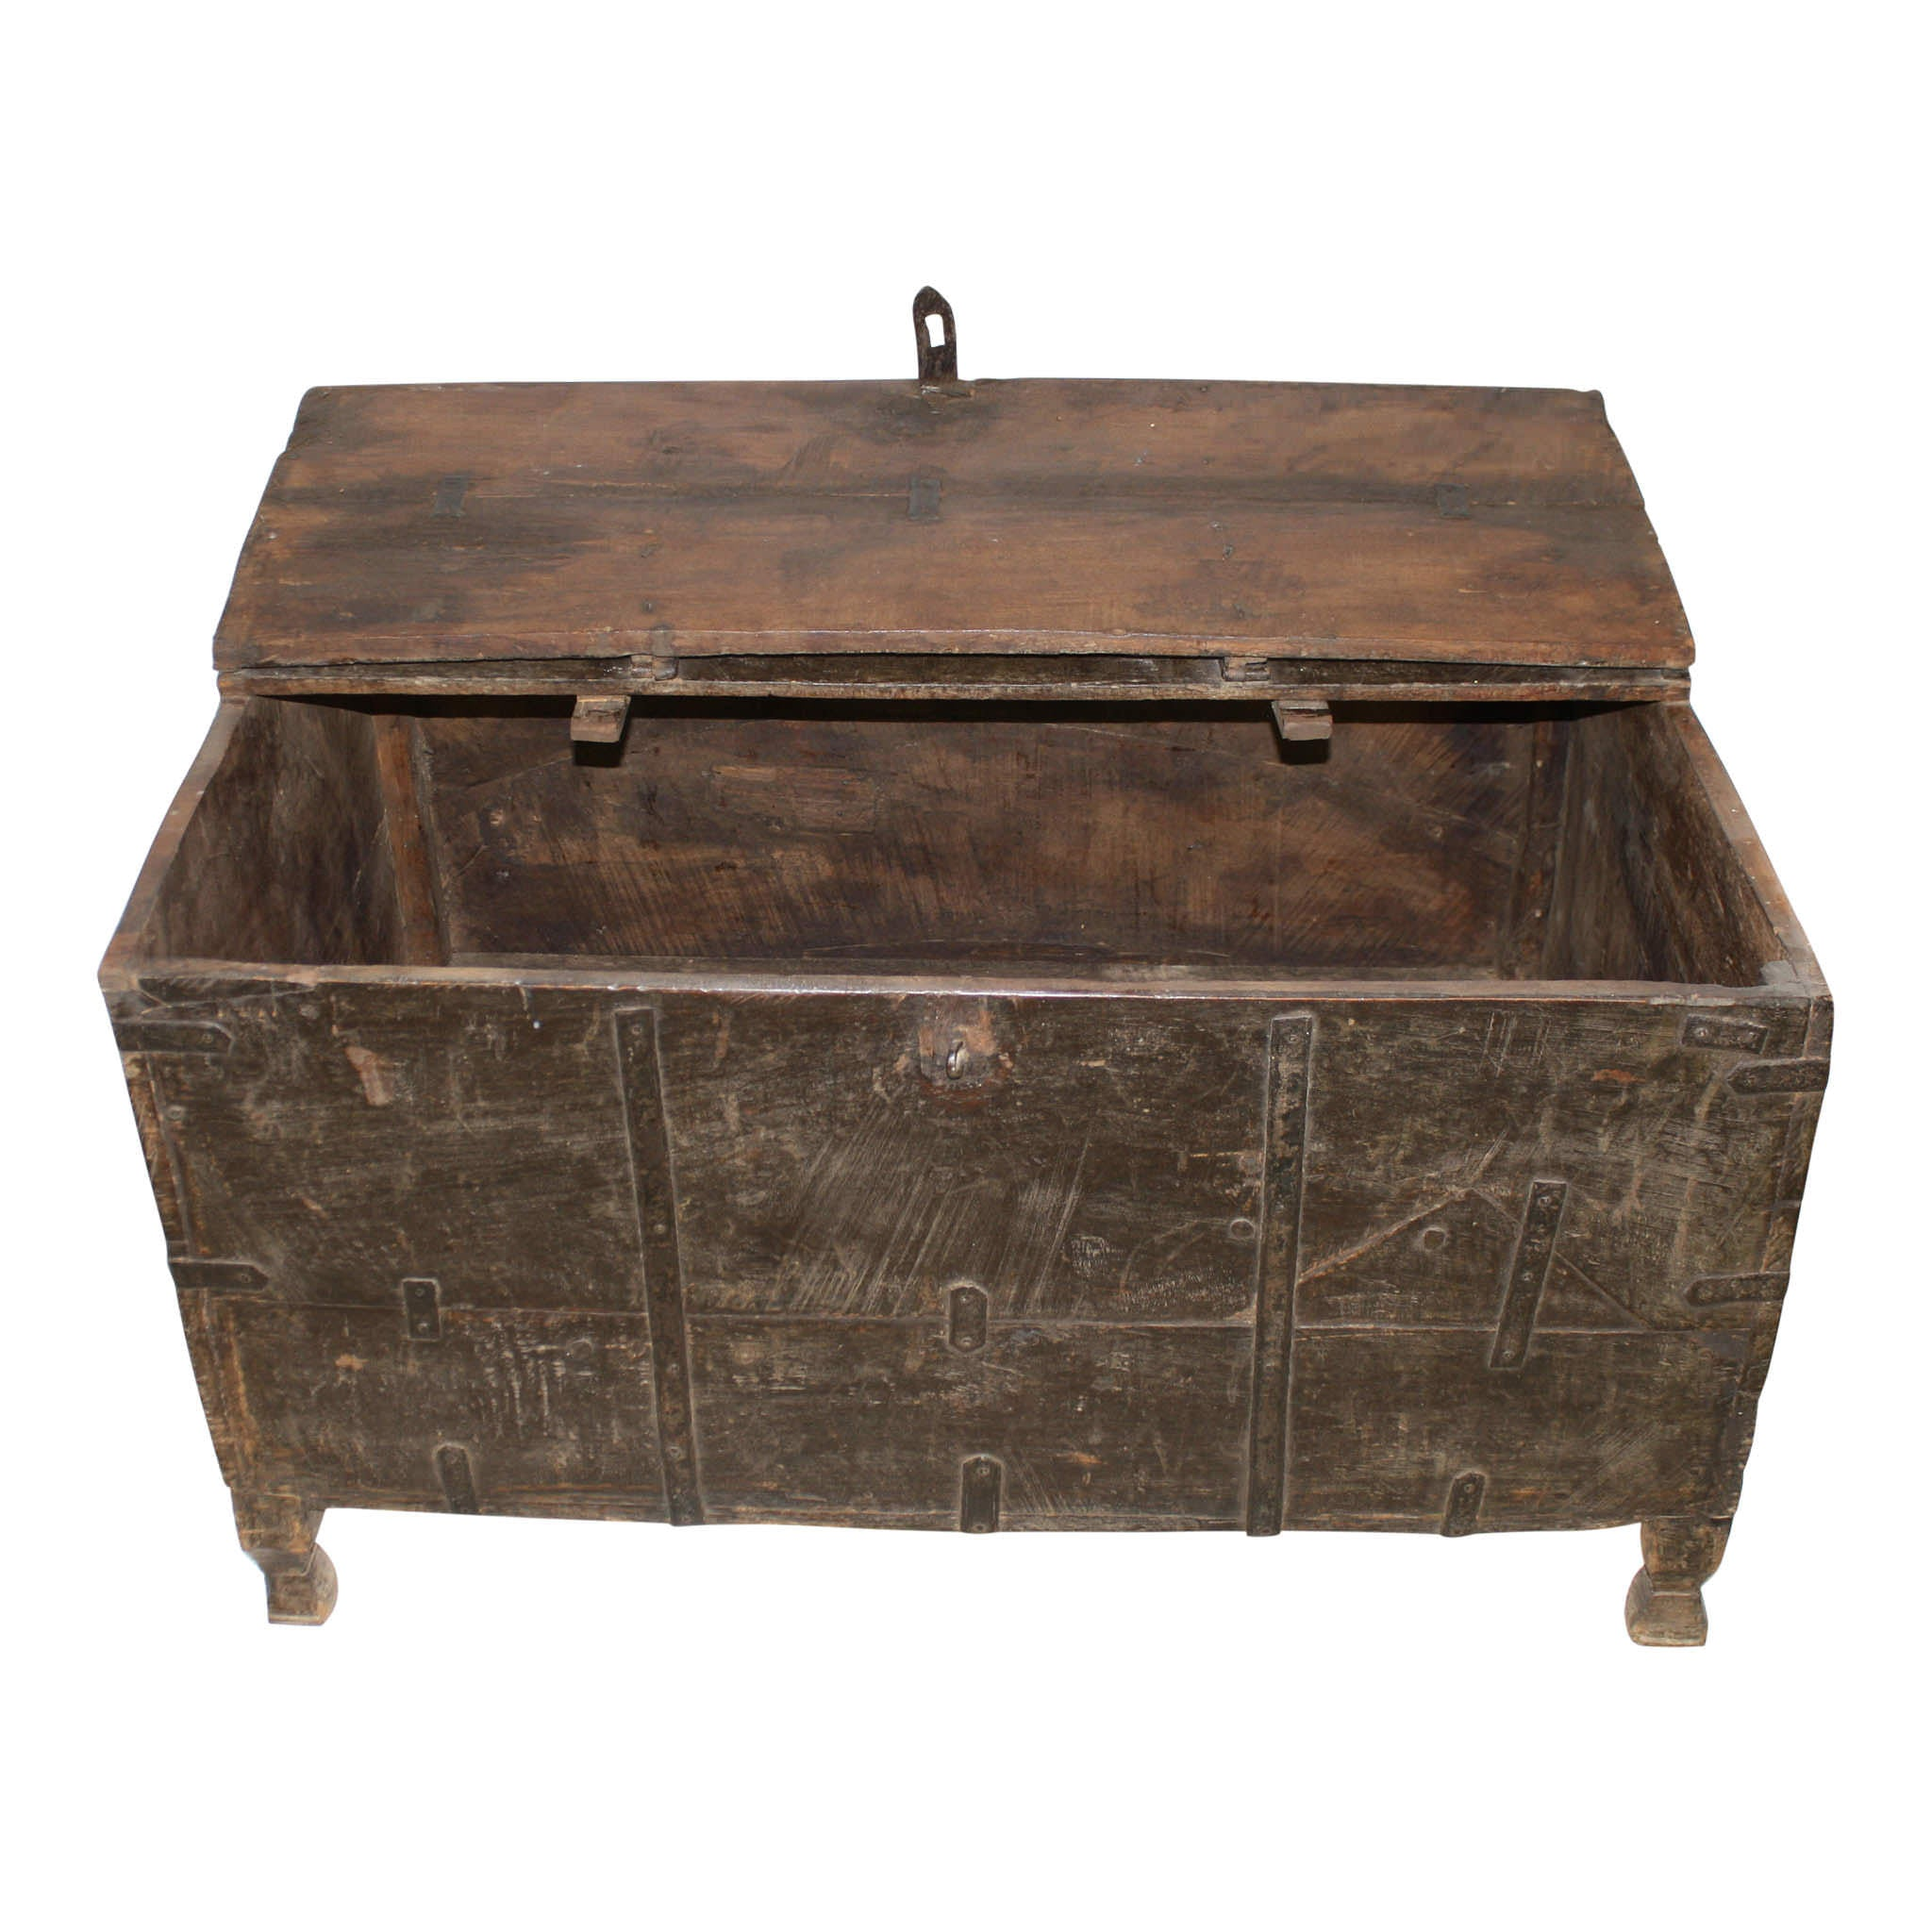 Trunk with Iron Accents